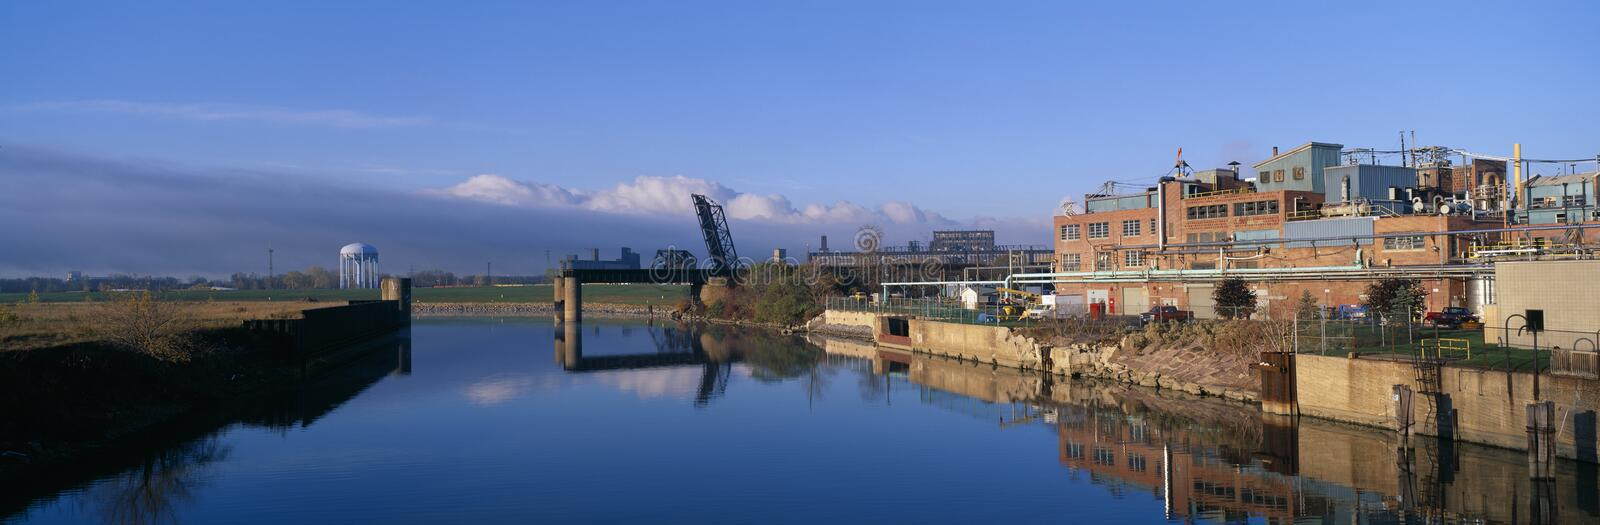 Industrial landscape along Rogue River stock image